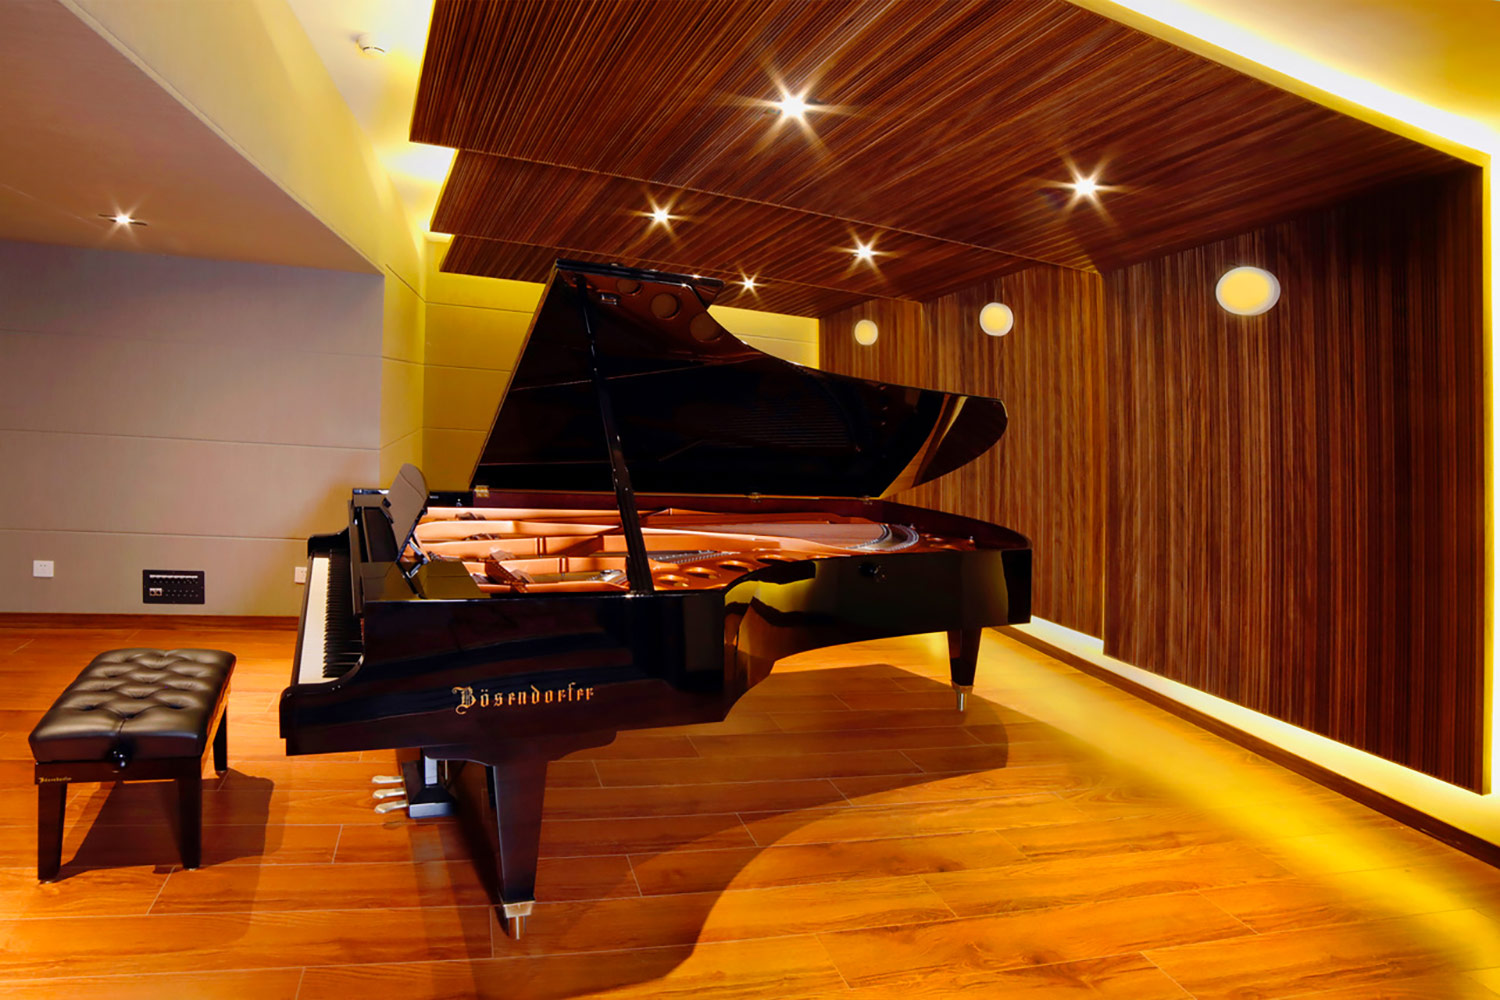 Zhejiang Conservatory of Music in Hangzhou, East China commissioned WSDG to create an important addition to this extraordinary institution, a 21st Century Music Production & Education Complex. Boutique ISO Booth with Piano 2.